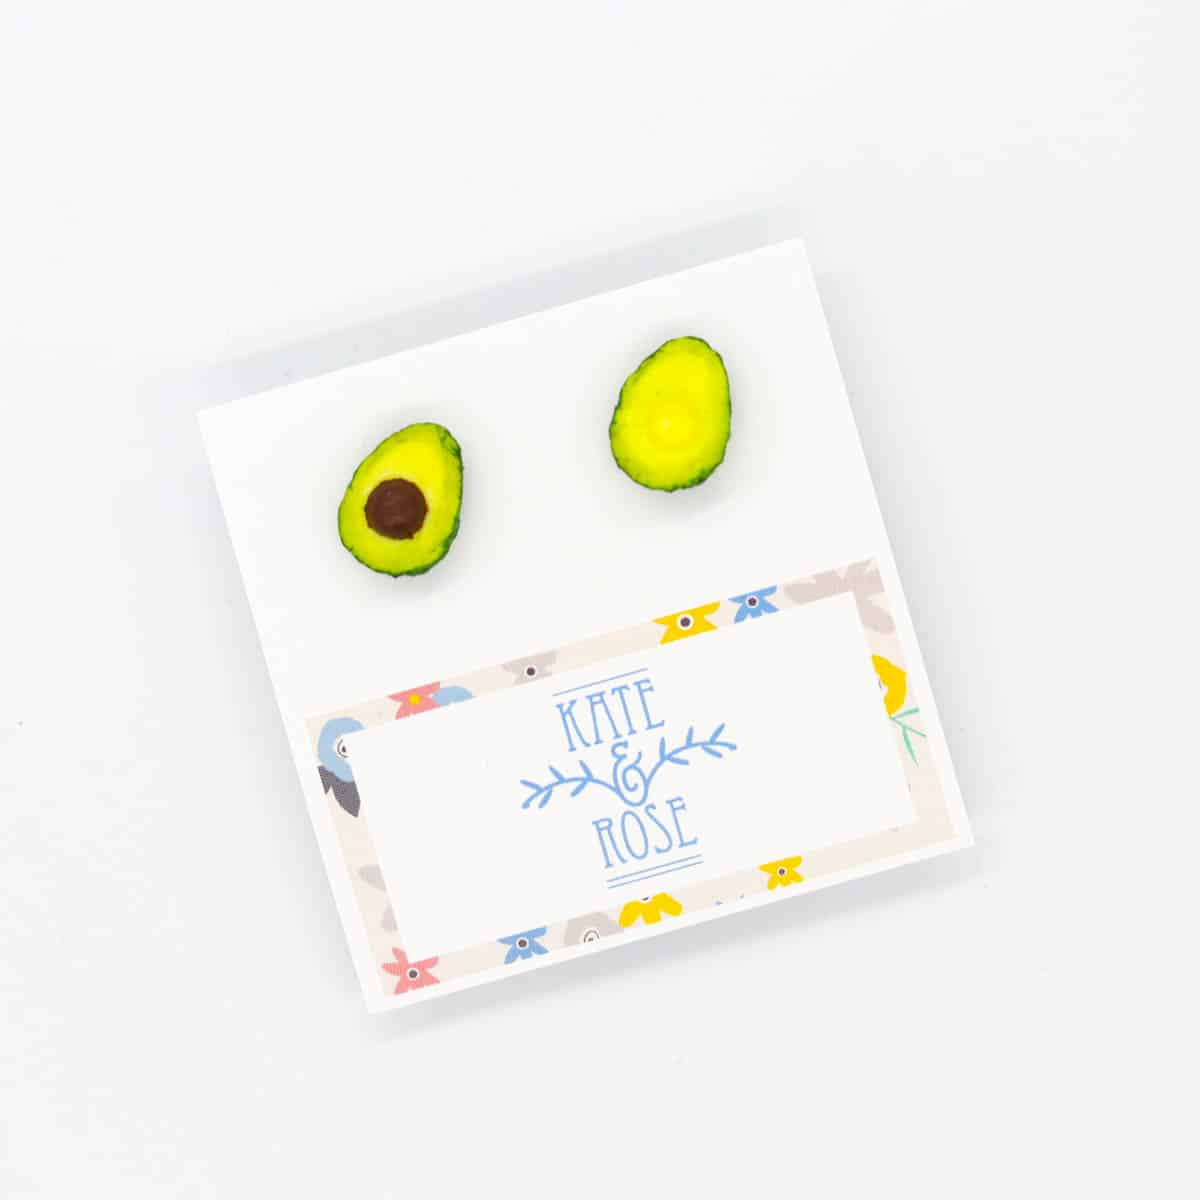 large-pc-avocados-by-kate-and-rose-fitzroy-122822-katenrosetea